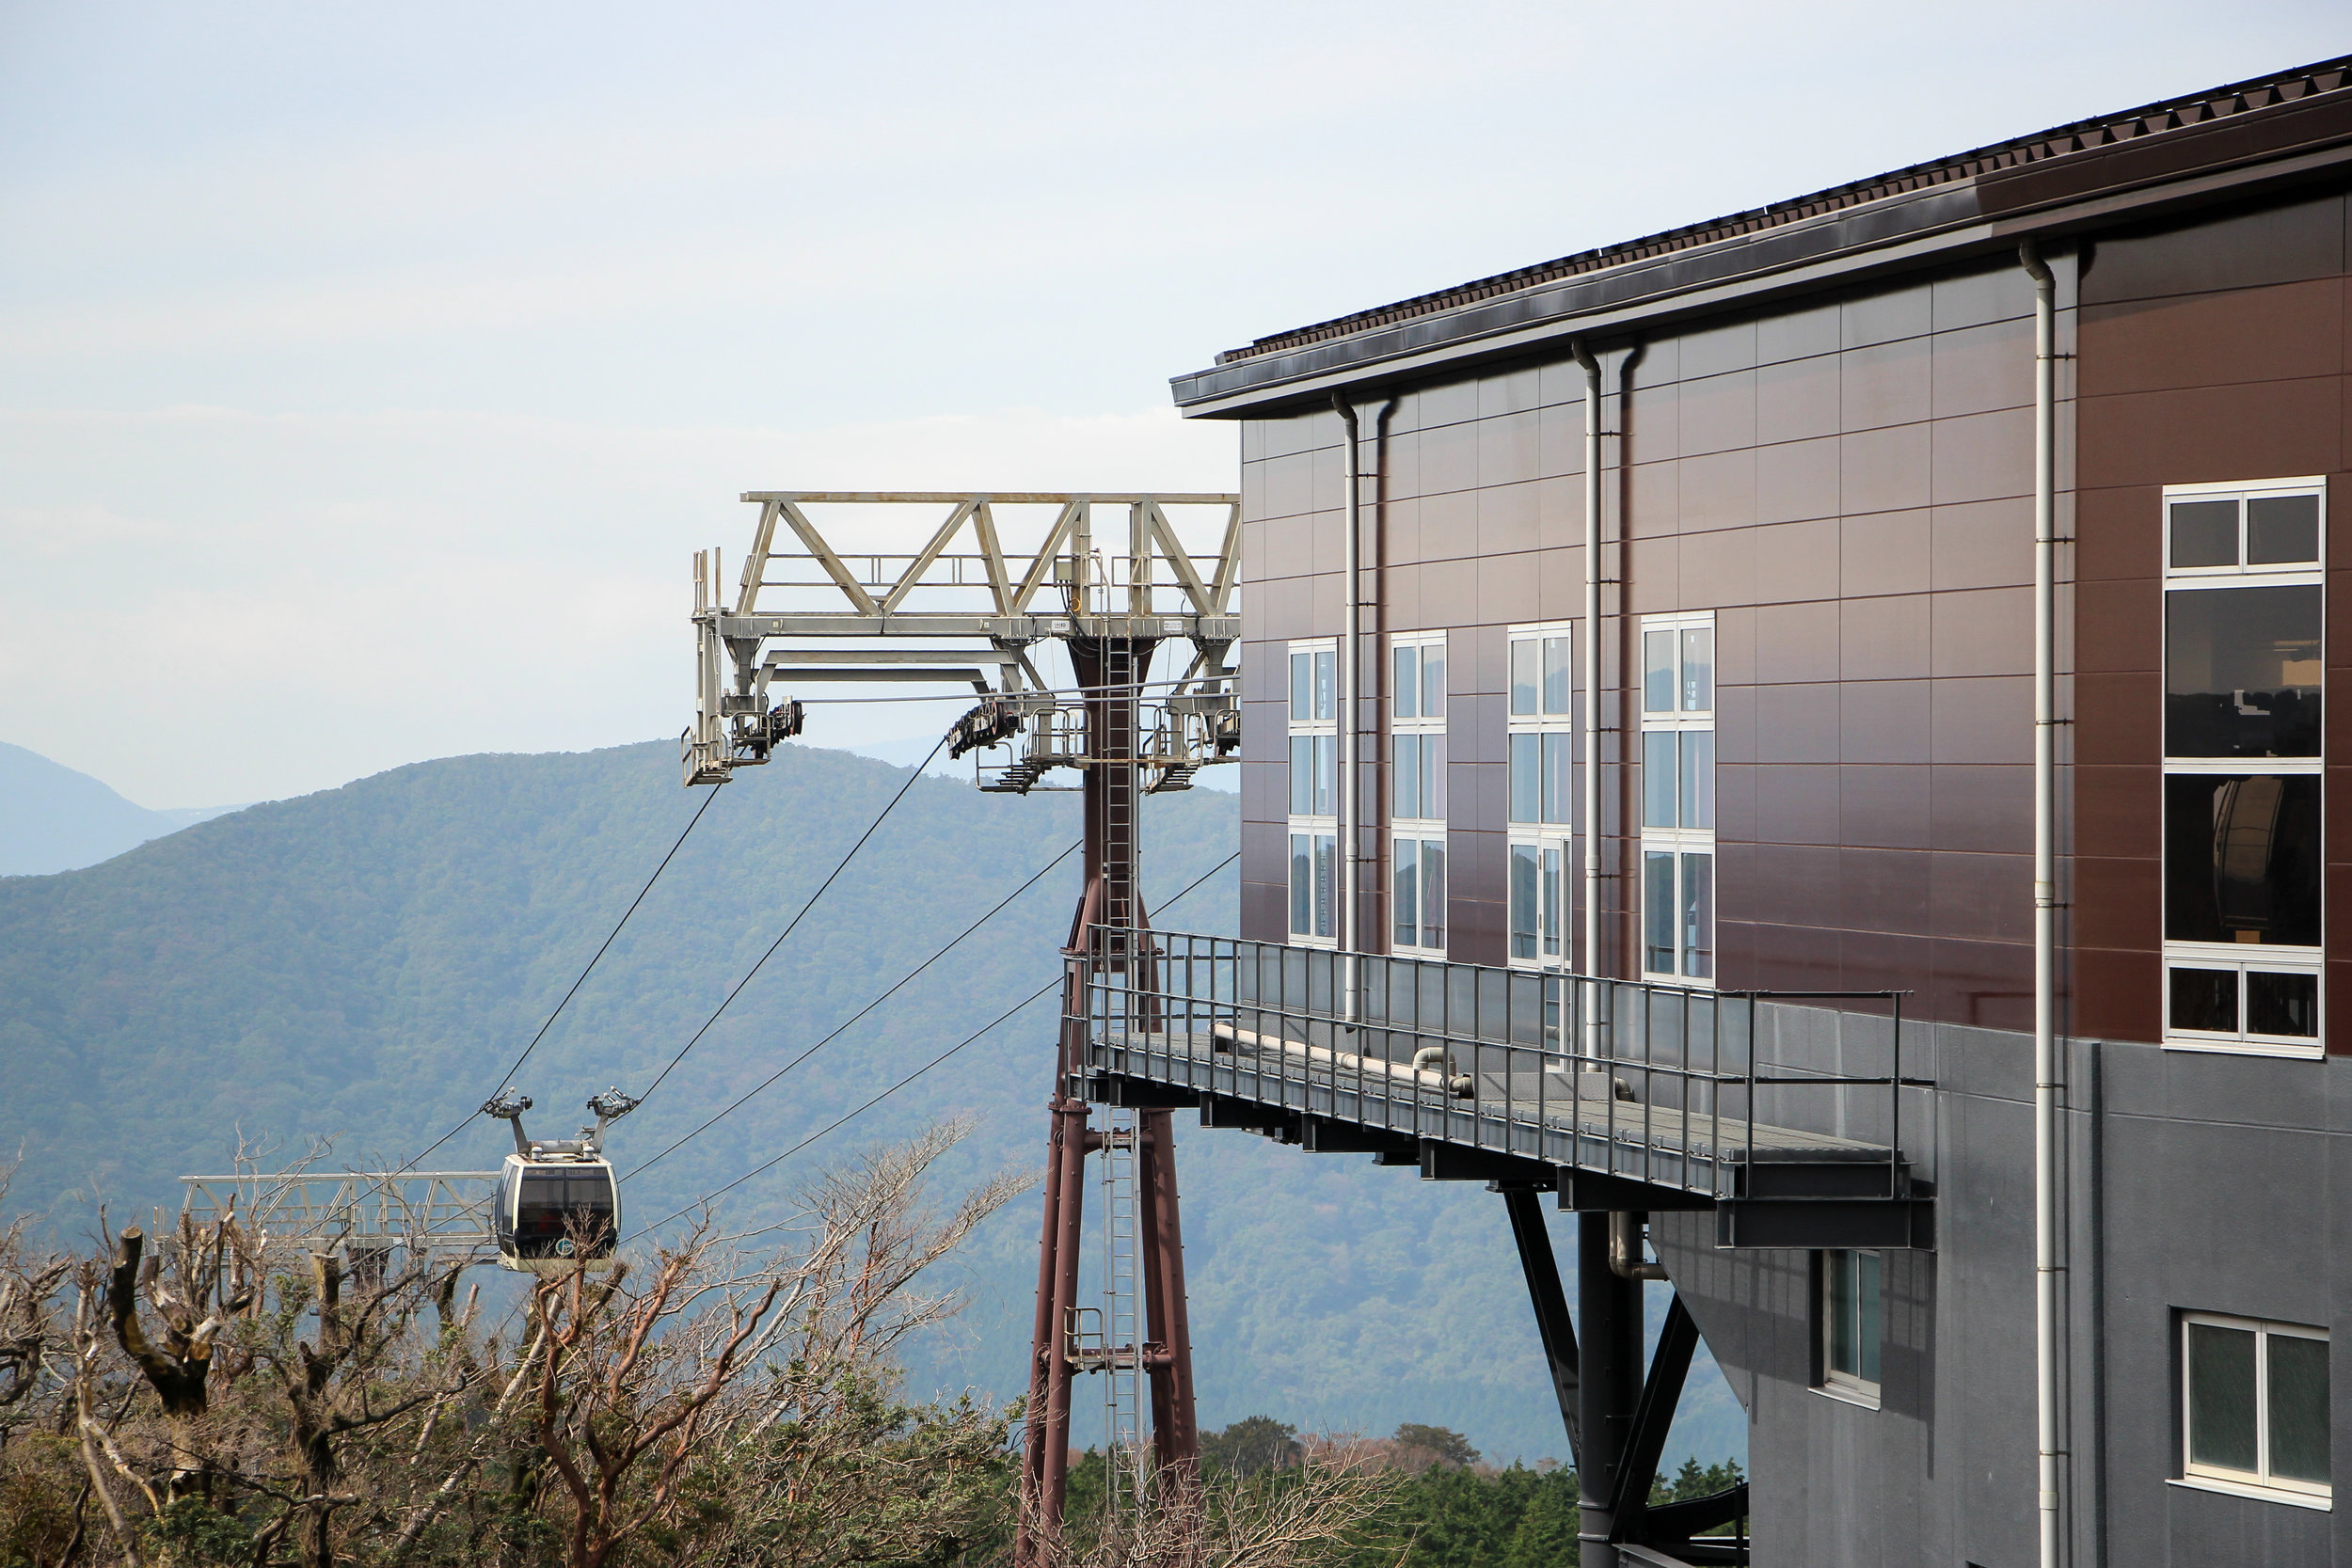 Hakone In A Simple Way Like That | Owakudani, Hakone, Volcano, Ropeway | Fuji-Hakone-Izu National Park, Japan, Asia | DoLessGetMoreDone.com |